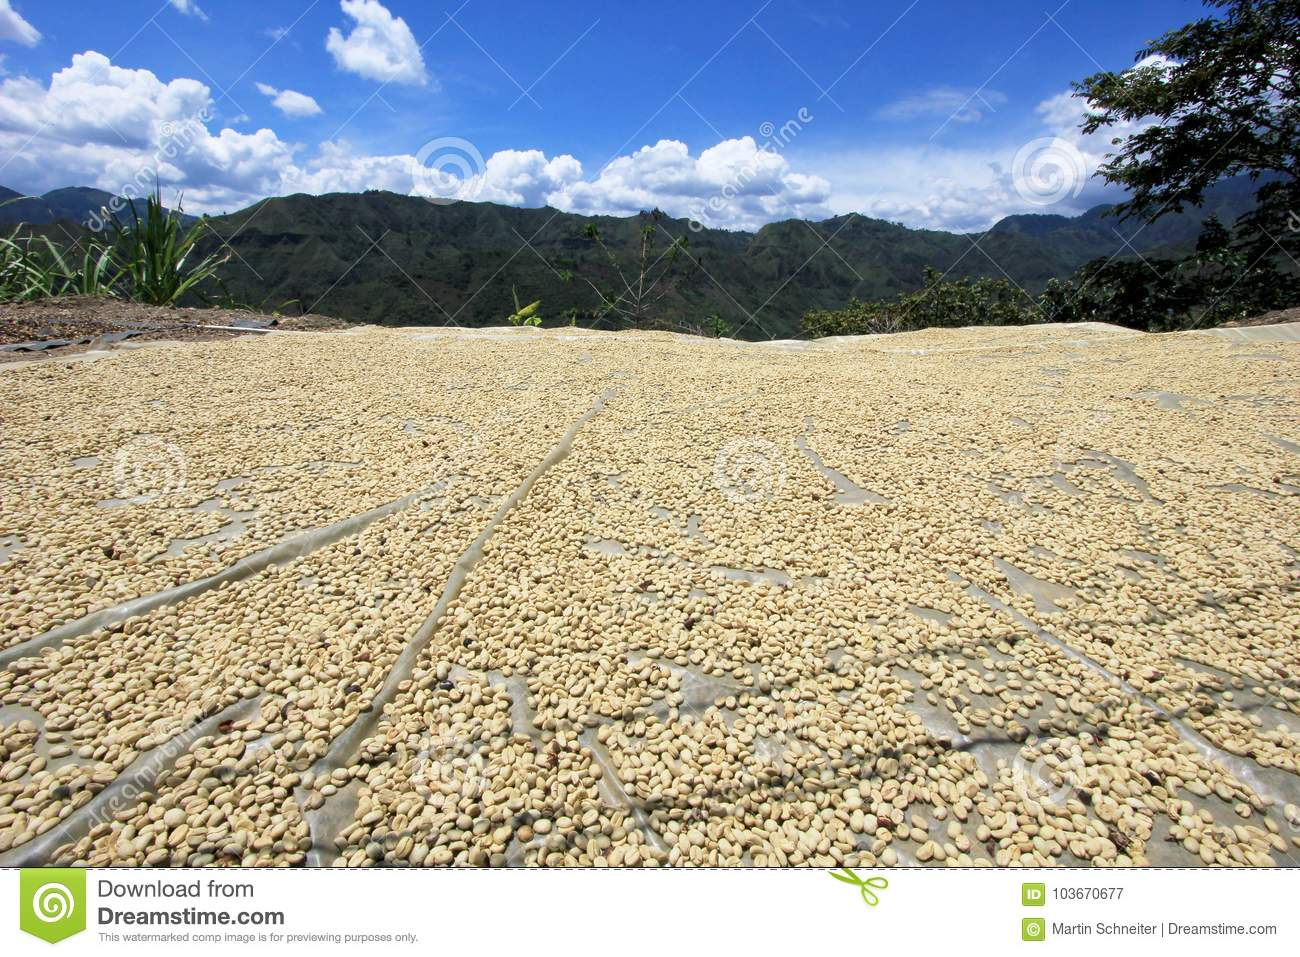 Coffee beans drying in the sun. Coffee plantations on the mountains of San Andres, Colombia